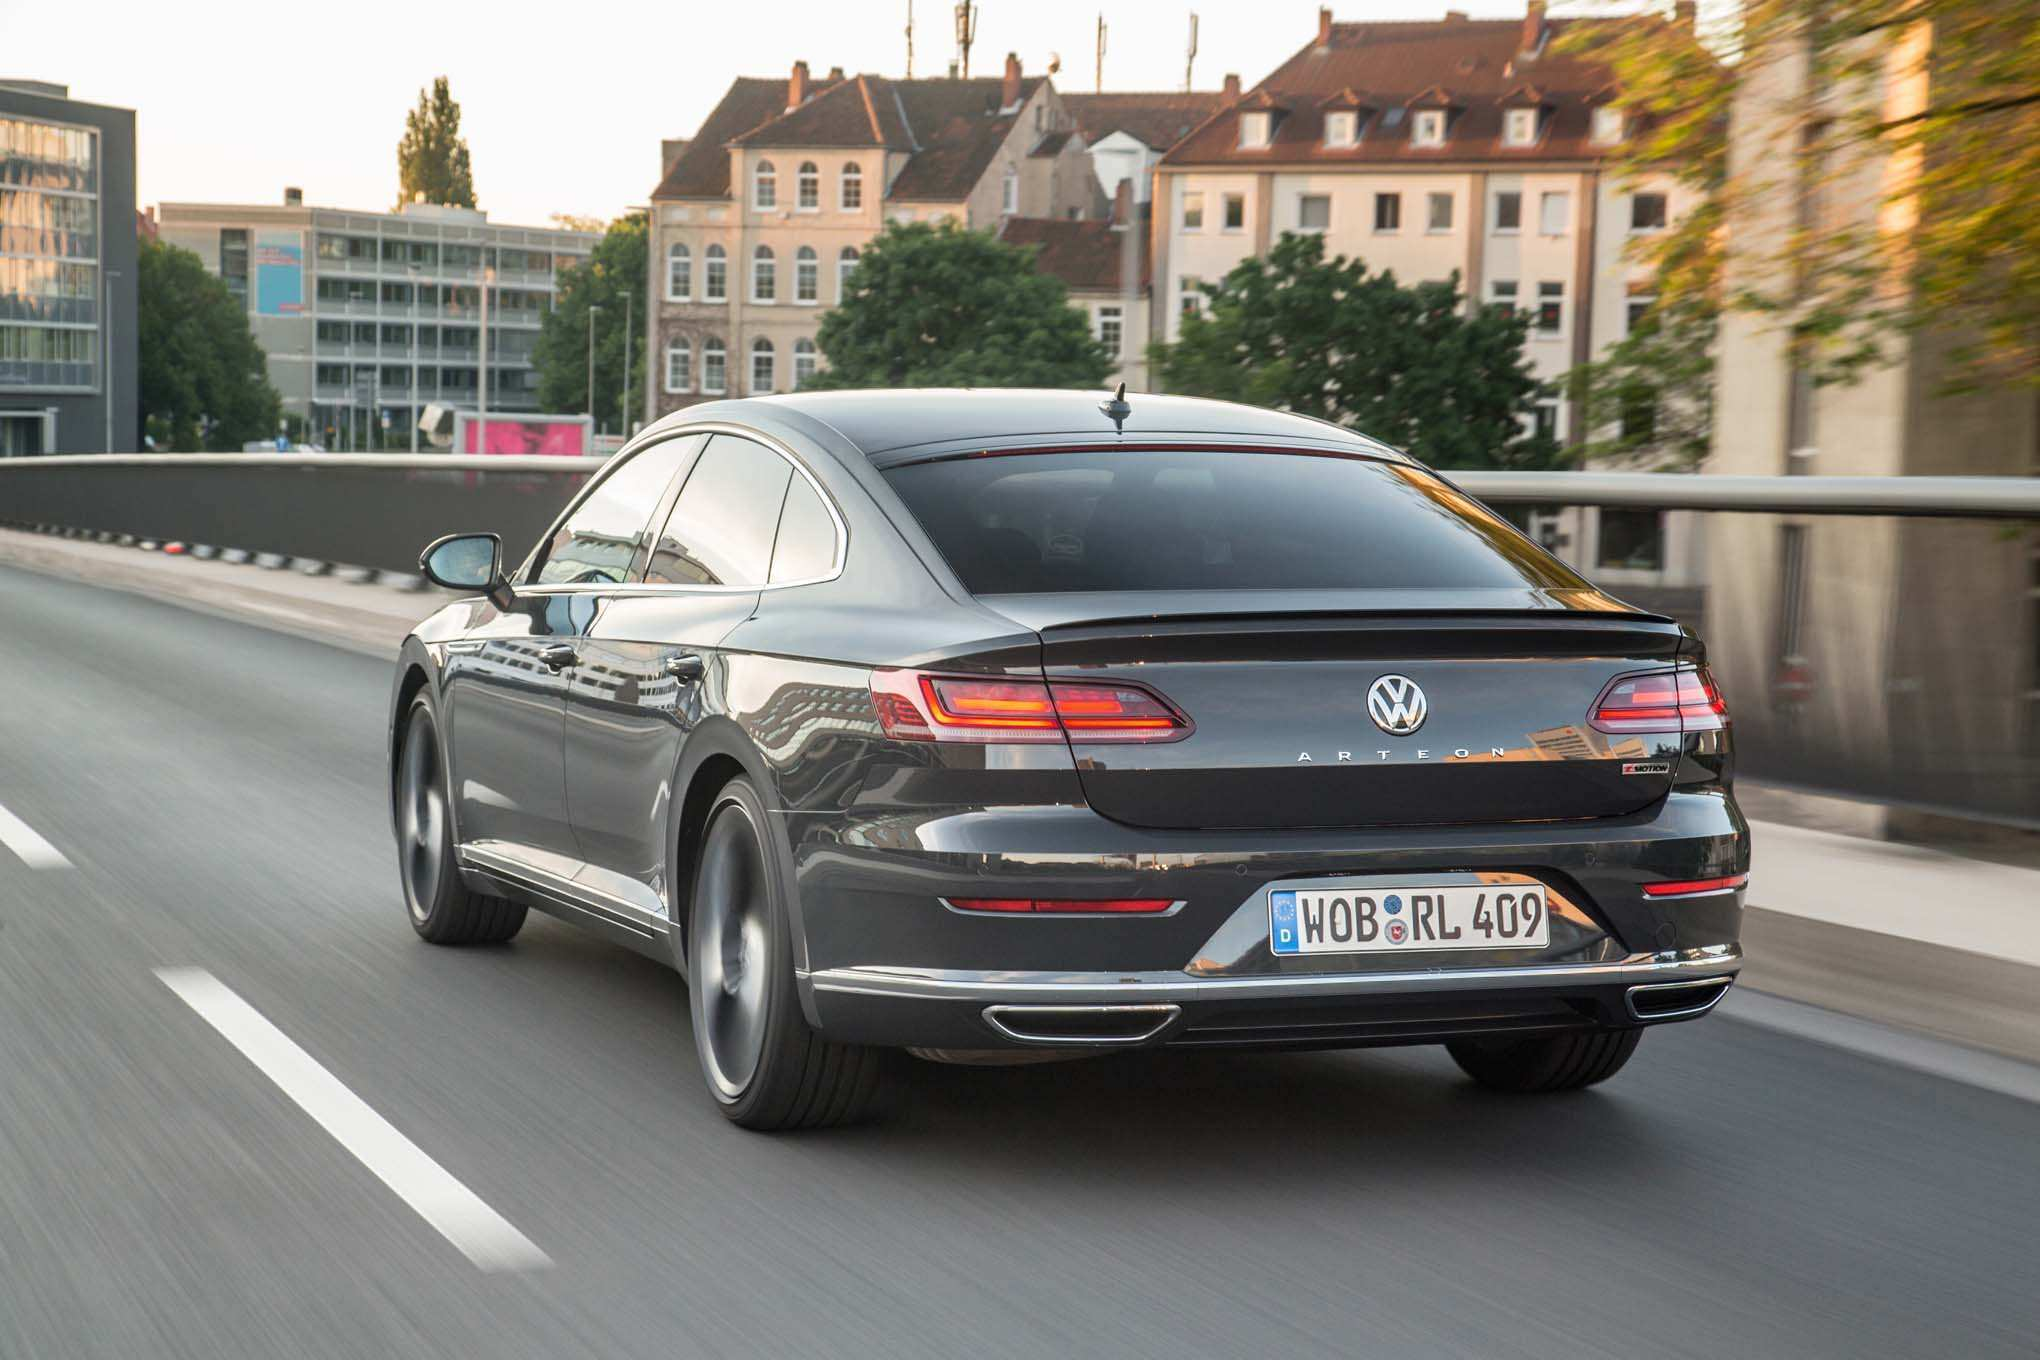 47 New 2019 Vw Arteon History with 2019 Vw Arteon